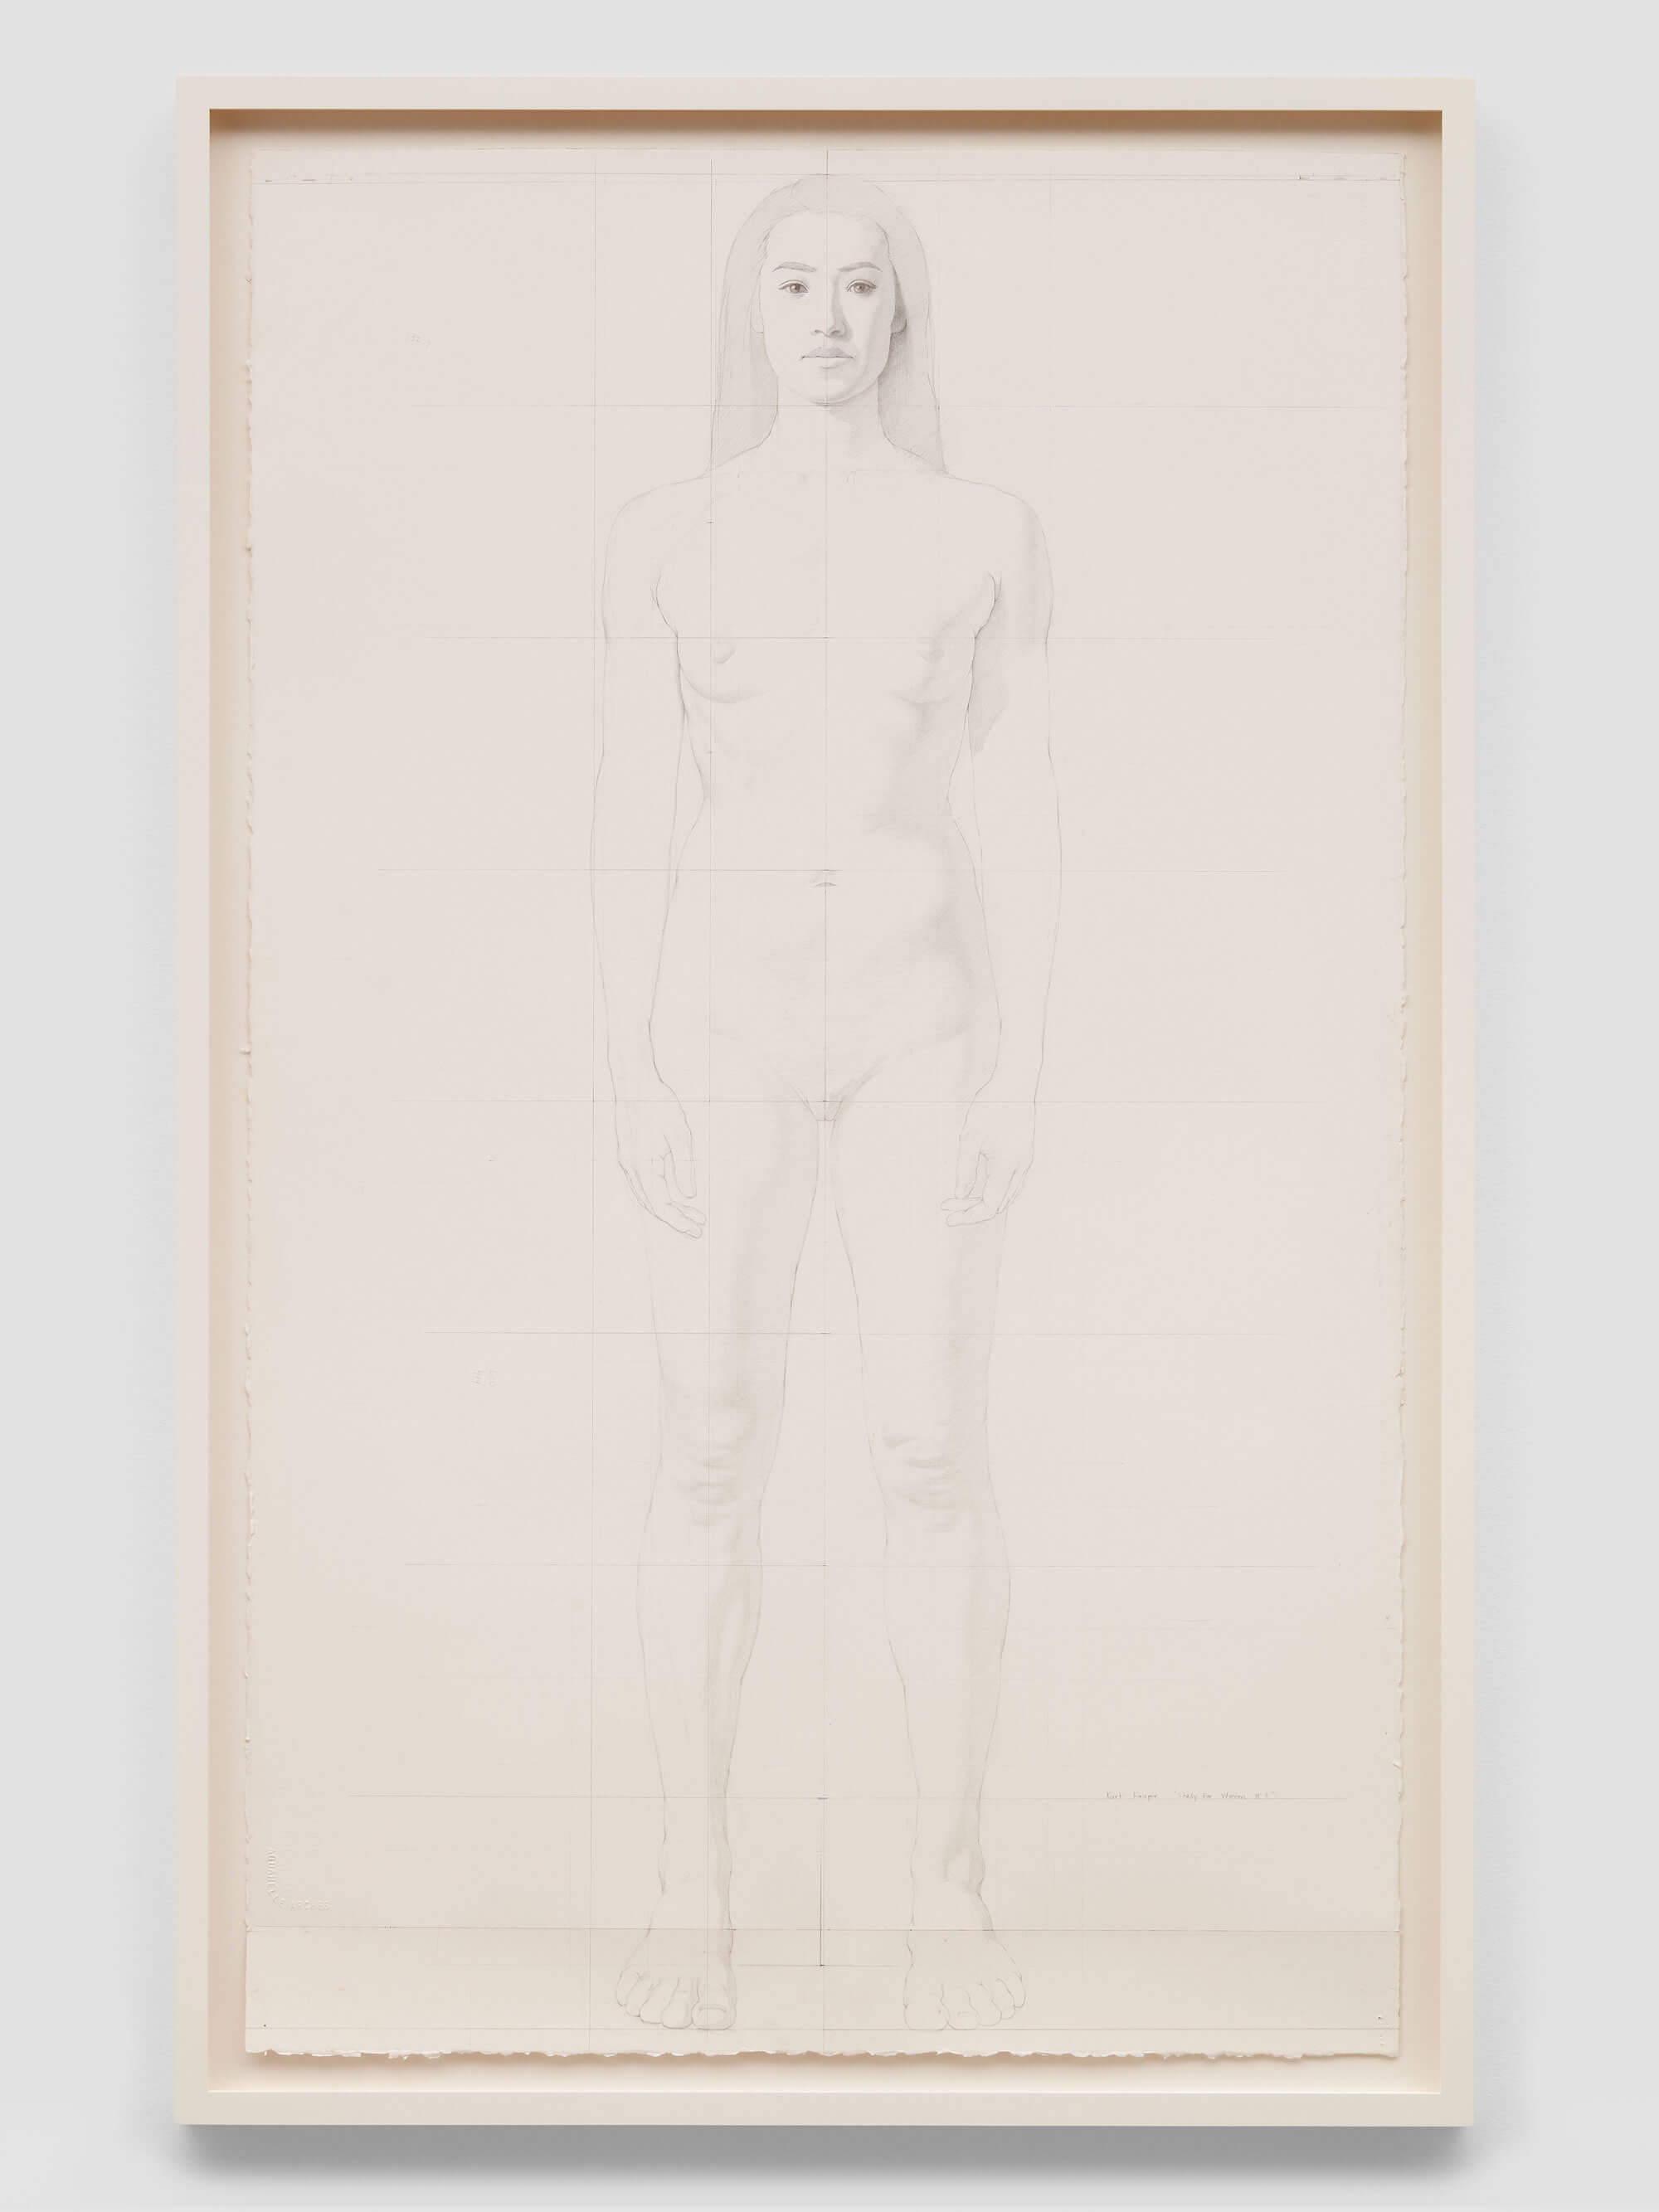 Kurt Kauper, Study for Woman 3, 2017, graphite on paper